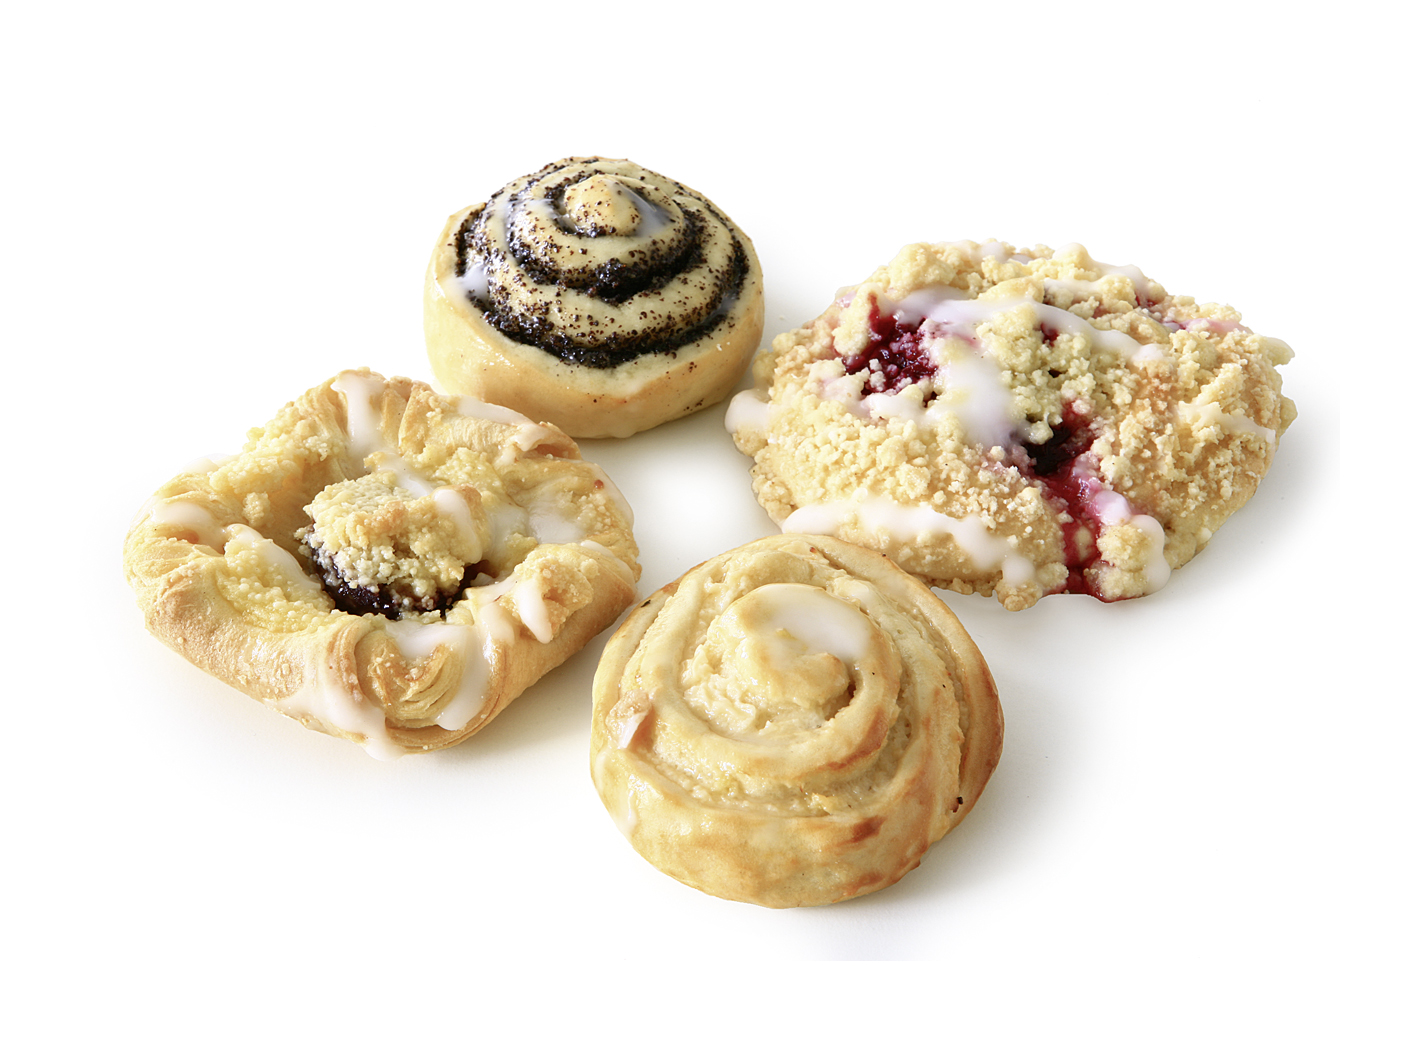 Selection of pastries - Mix of the varieties: cherry streusel snail, plum streusel puff pastry, poppy-yeast snail, apple-curd cheese yeast snail